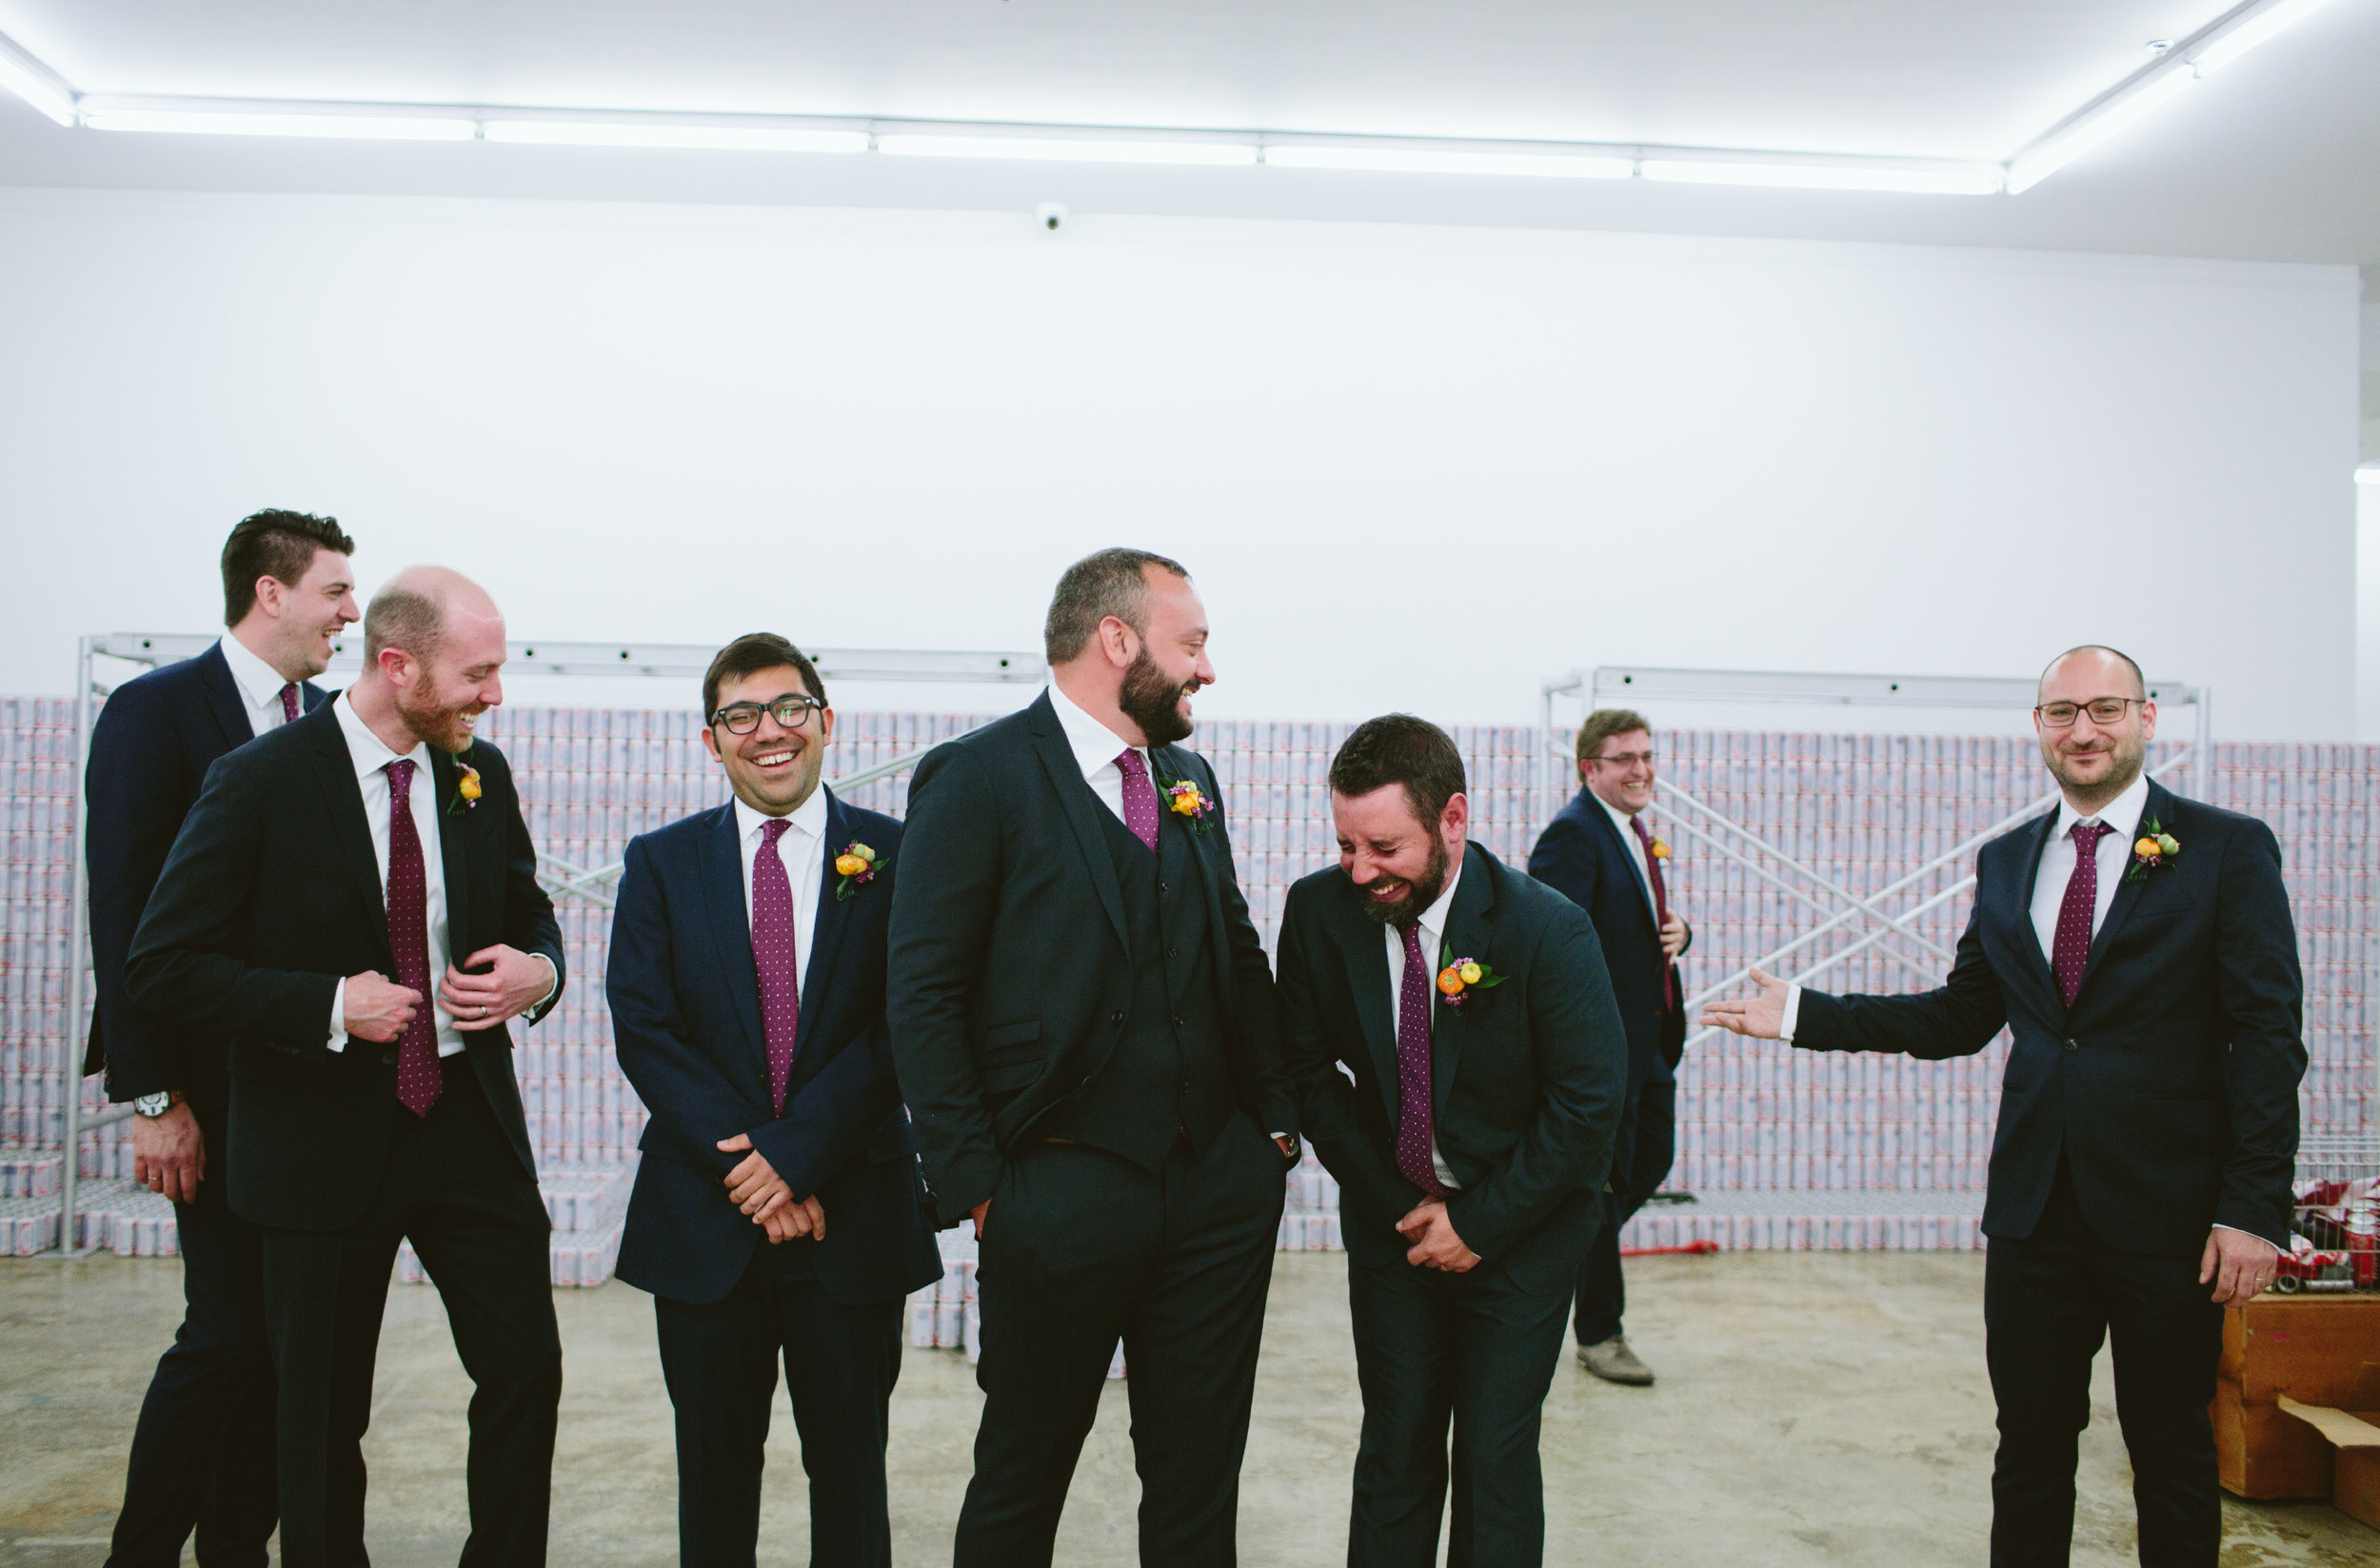 Wynwood Wedding at Rubell Family Collection in Dowtown Miami13.jpg